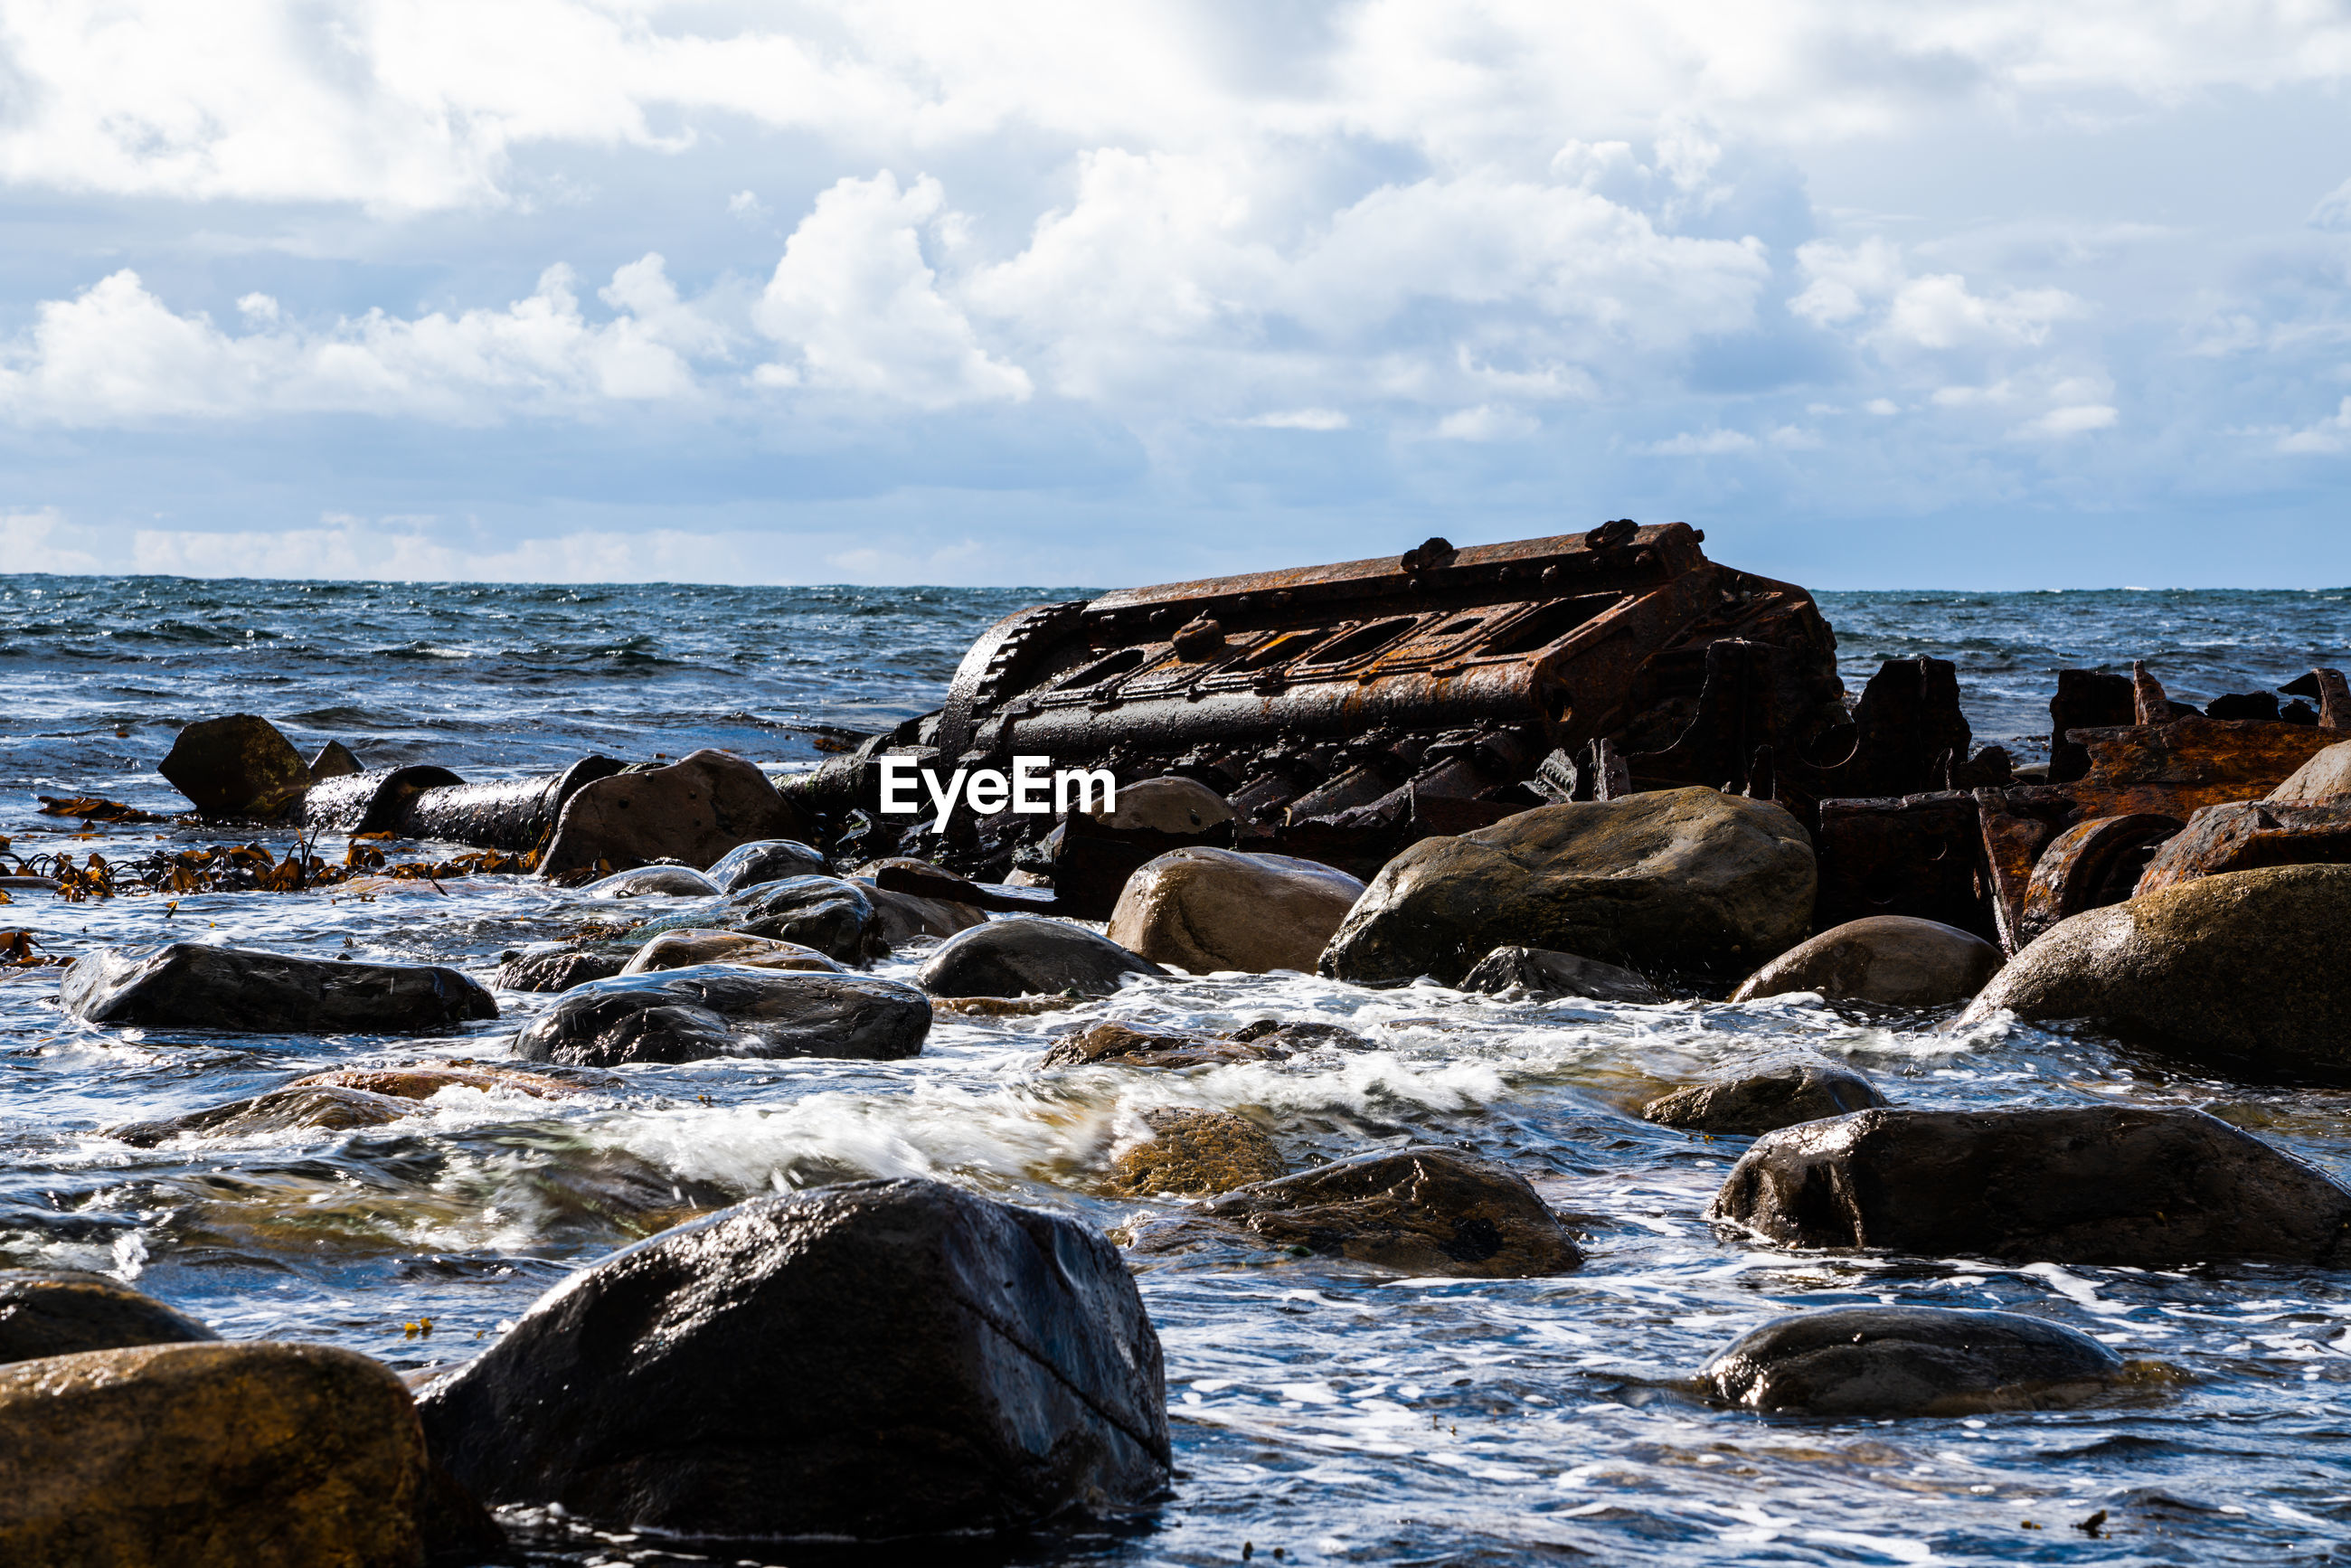 SCENIC VIEW OF ROCKS ON SHORE AGAINST SKY